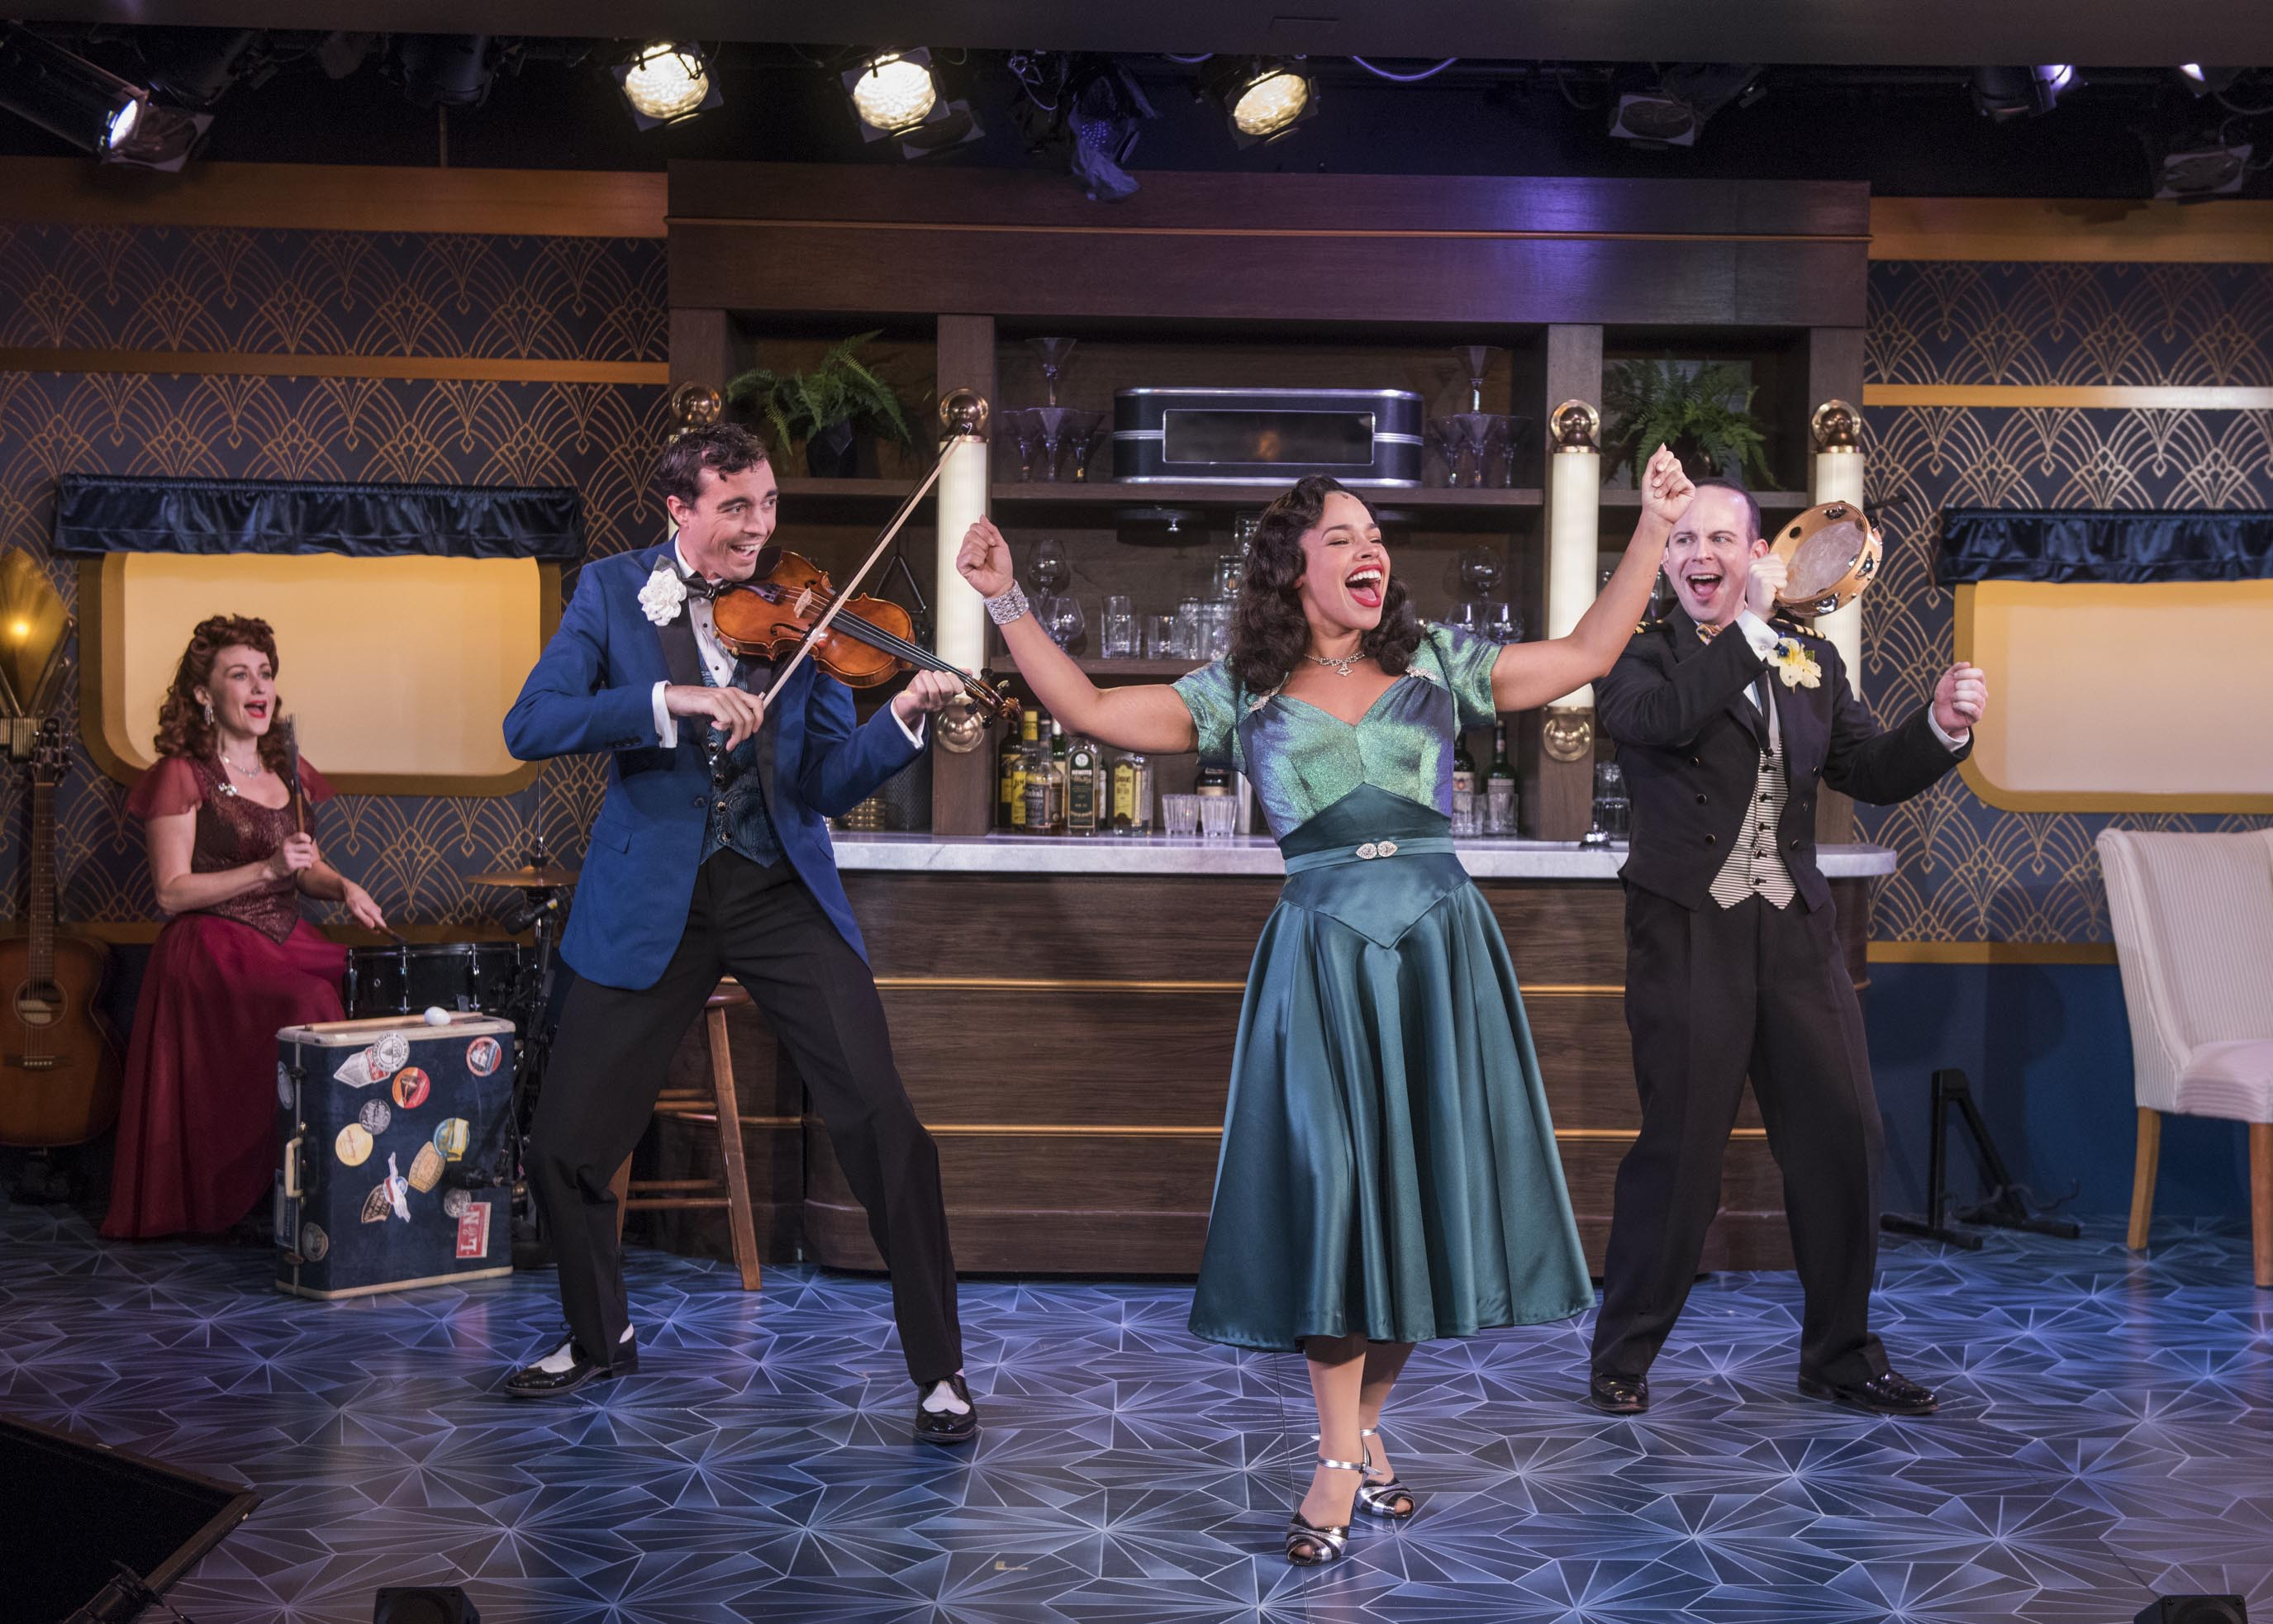 Milwaukee Repertory Theater presents The All Night Strut! in the Stackner Cabaret from November 9, 2018 – January 13, 2019. Left to Right: Kelley Faulkner, Brian Russell Carey, Katherine Thomas, Jonathan Spivey. Photo by Michael Brosilow.